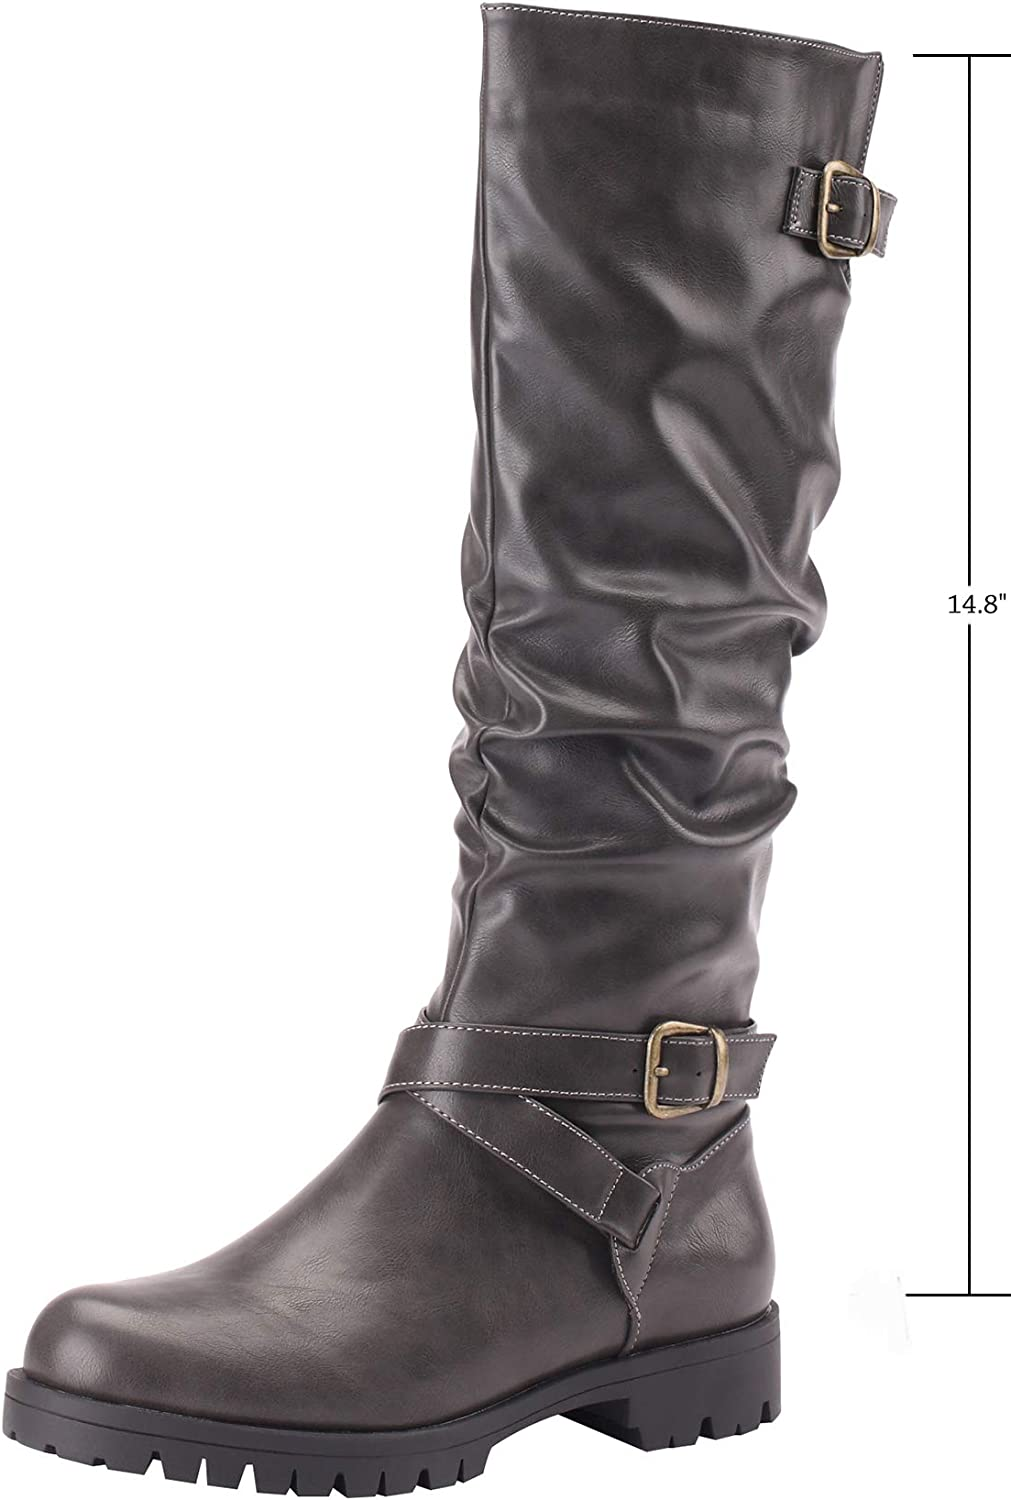 Sofree Women's Knee High Riding Boots